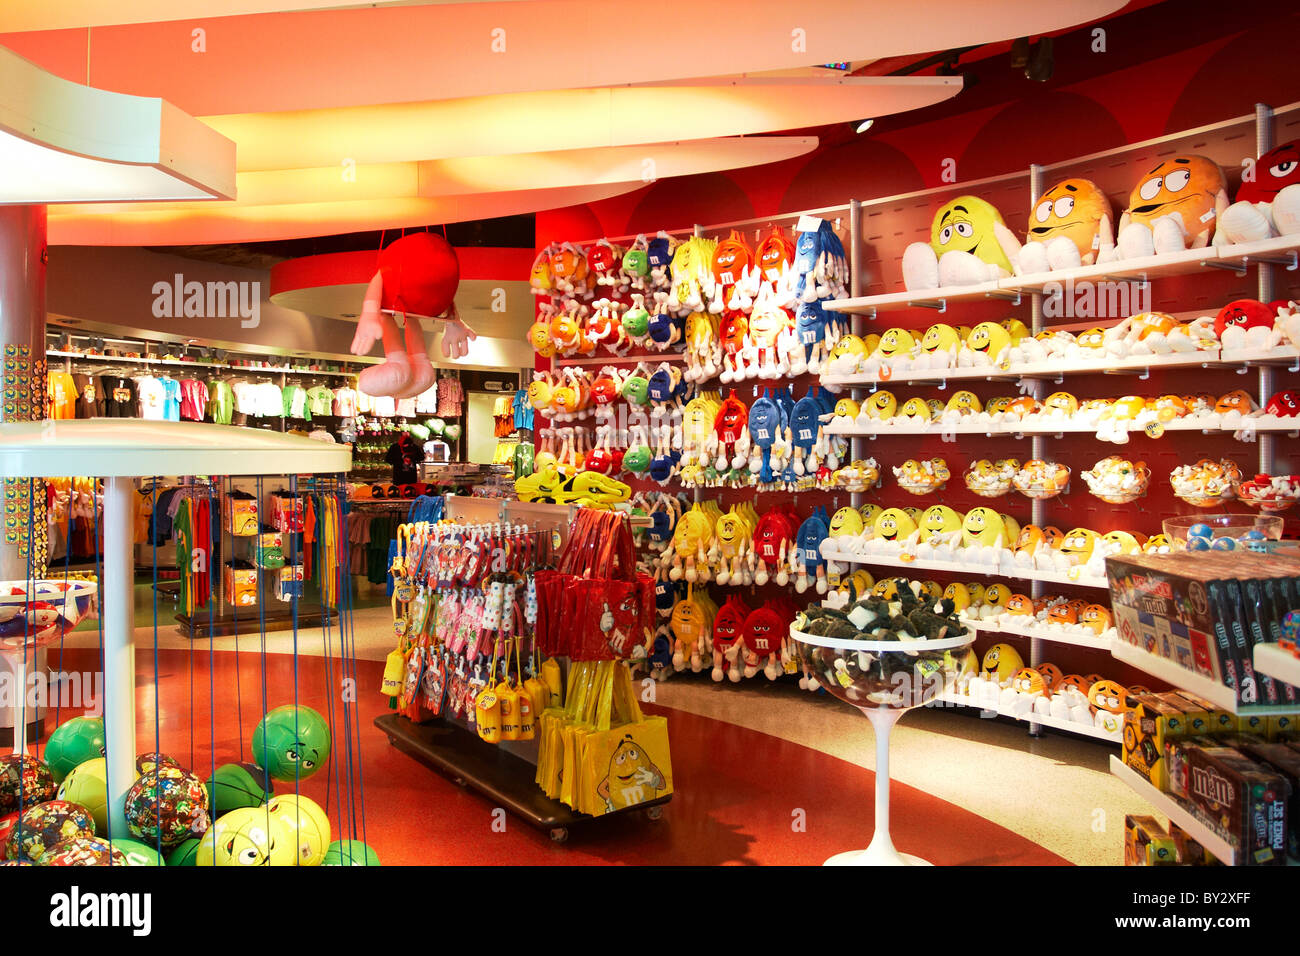 M&M'S World, located at The Florida Mall®: Enjoy the ultimate M&M'S® brand experience in this chocolate store full of colorful chocolate fun. Find your favorite color or flavor at the world famous M&M'S chocolate wall, meet your favorite character, discover your true .